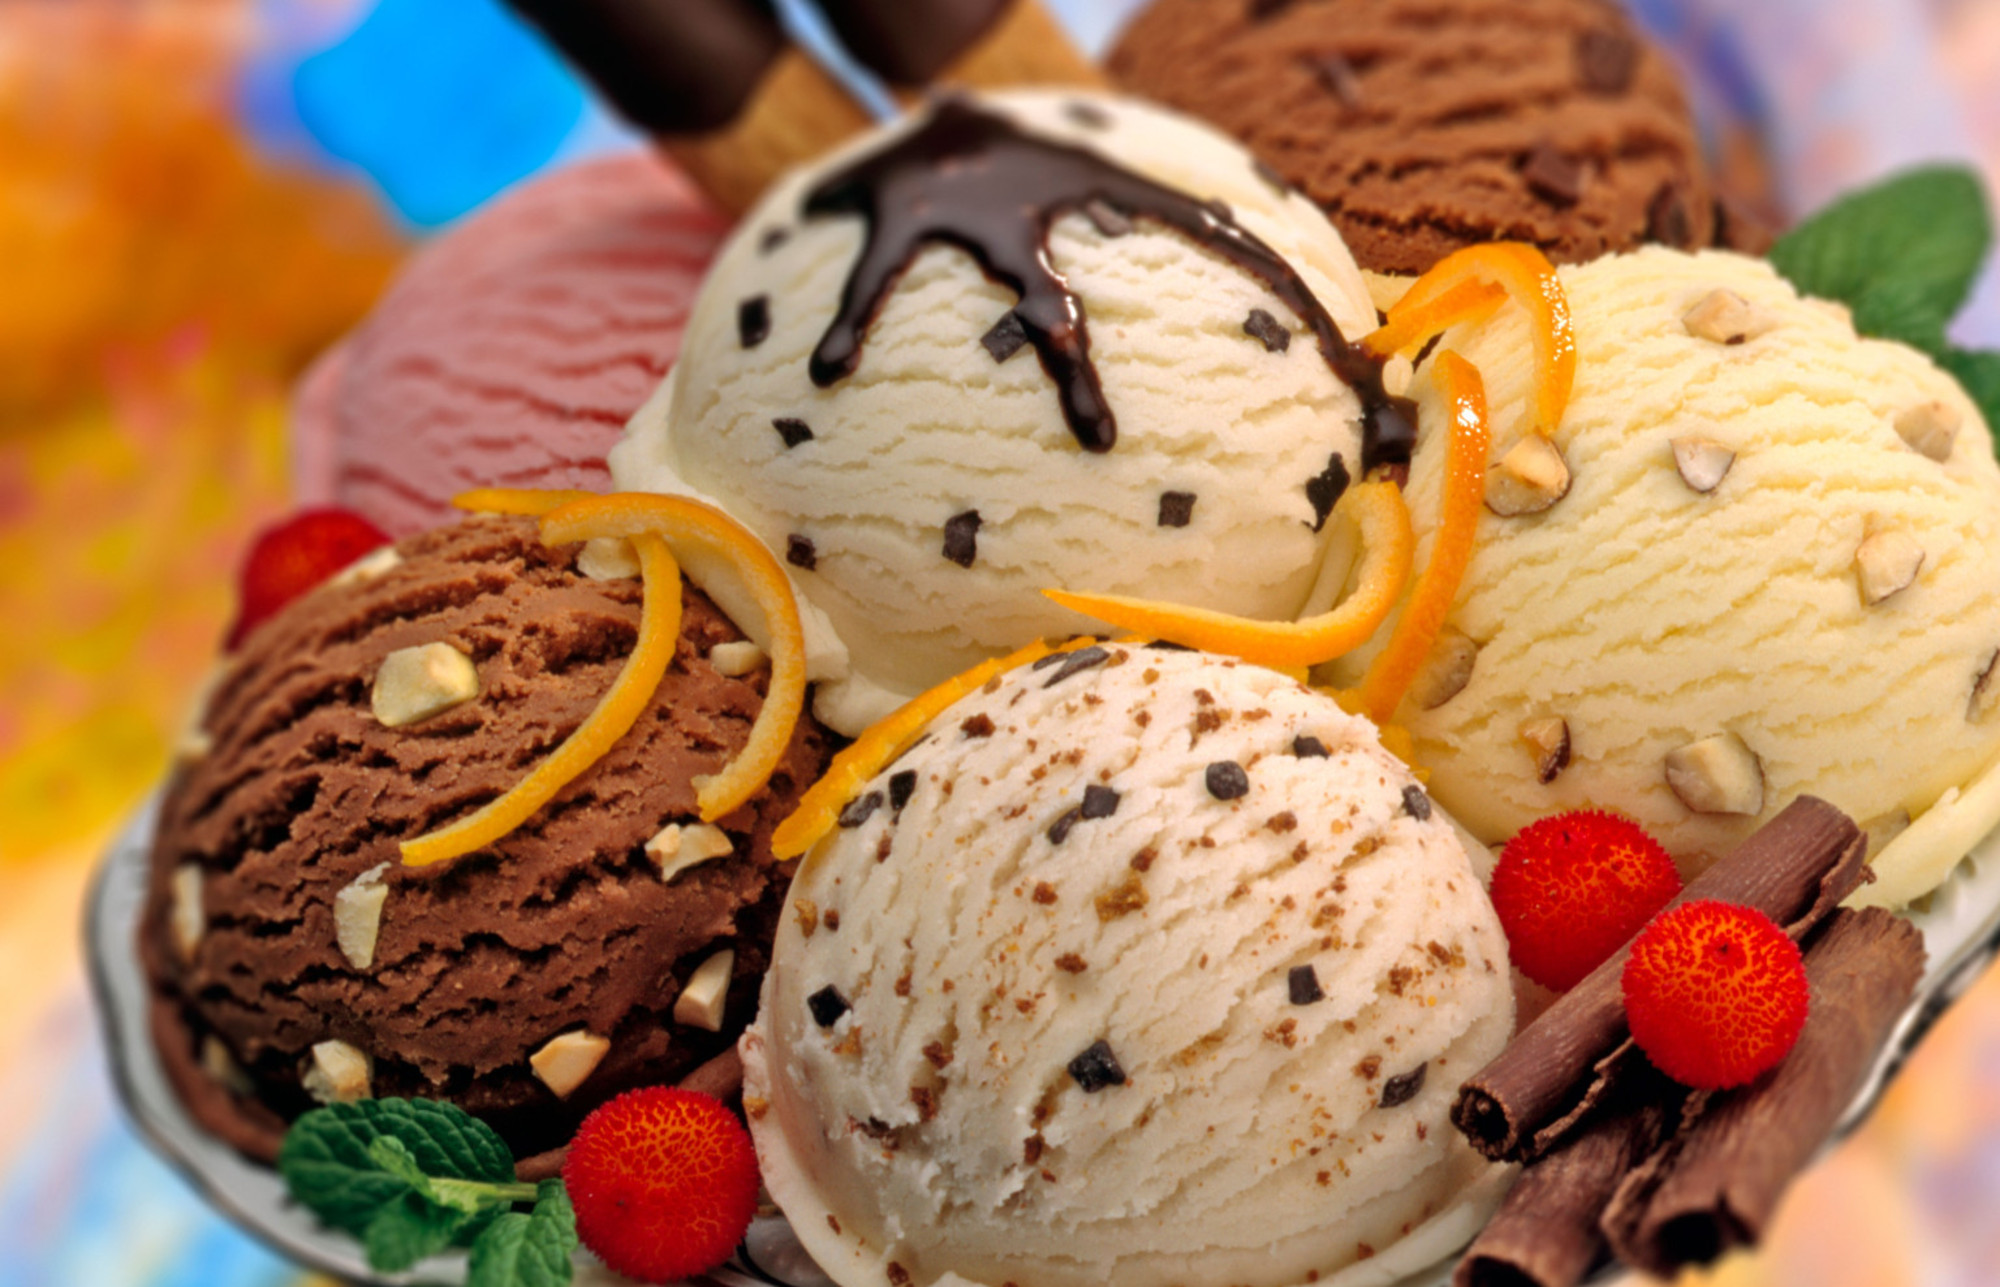 Wallpapers Ice Cream